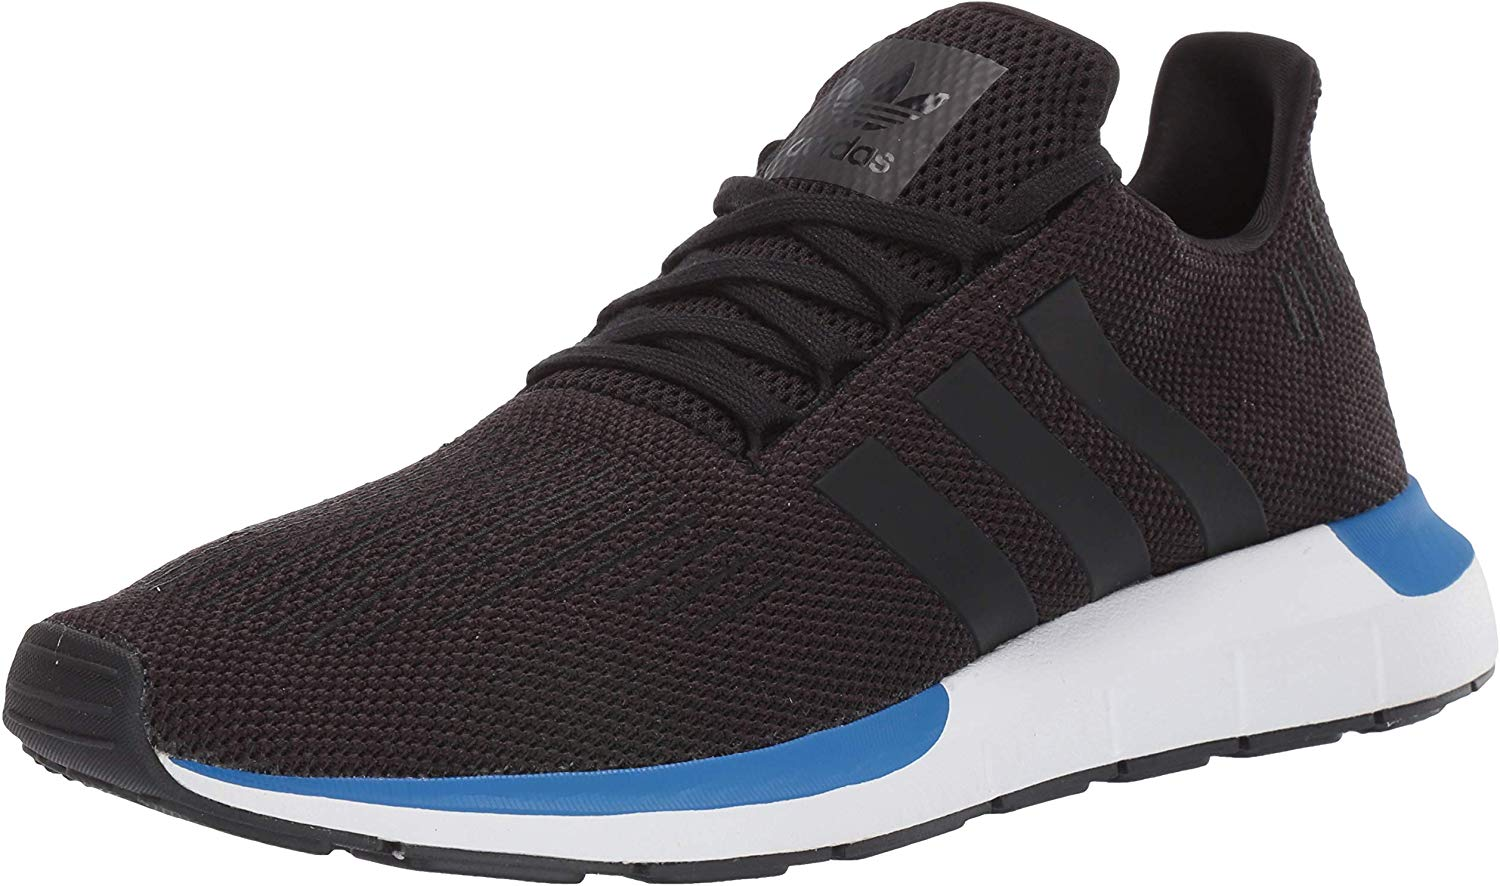 adidas Originals Mens Swift Running Shoe - Black/White - 10